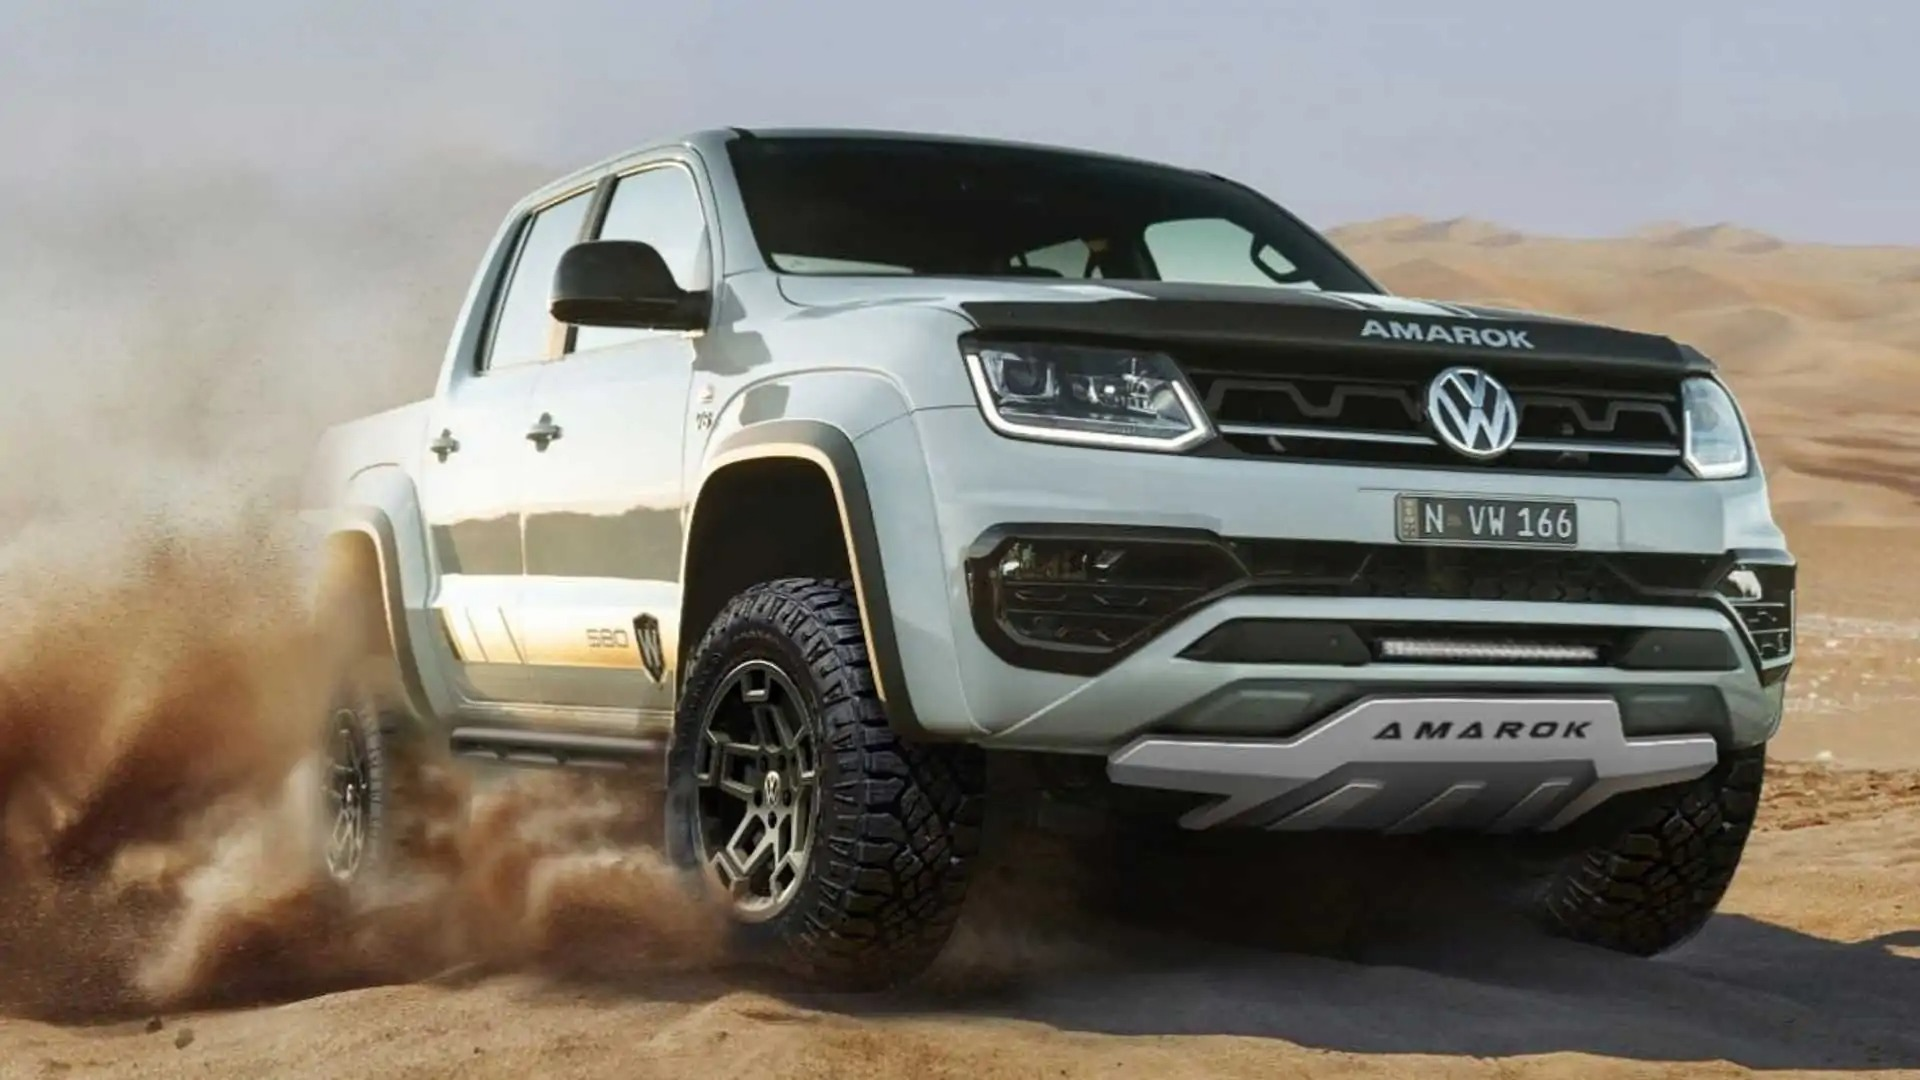 While Volkswagen is preparing to refresh its long-lived Amarok pickup line, the Australia branch has teamed up with Walkinshaw to accessorize the current generation for heavy off-road use.